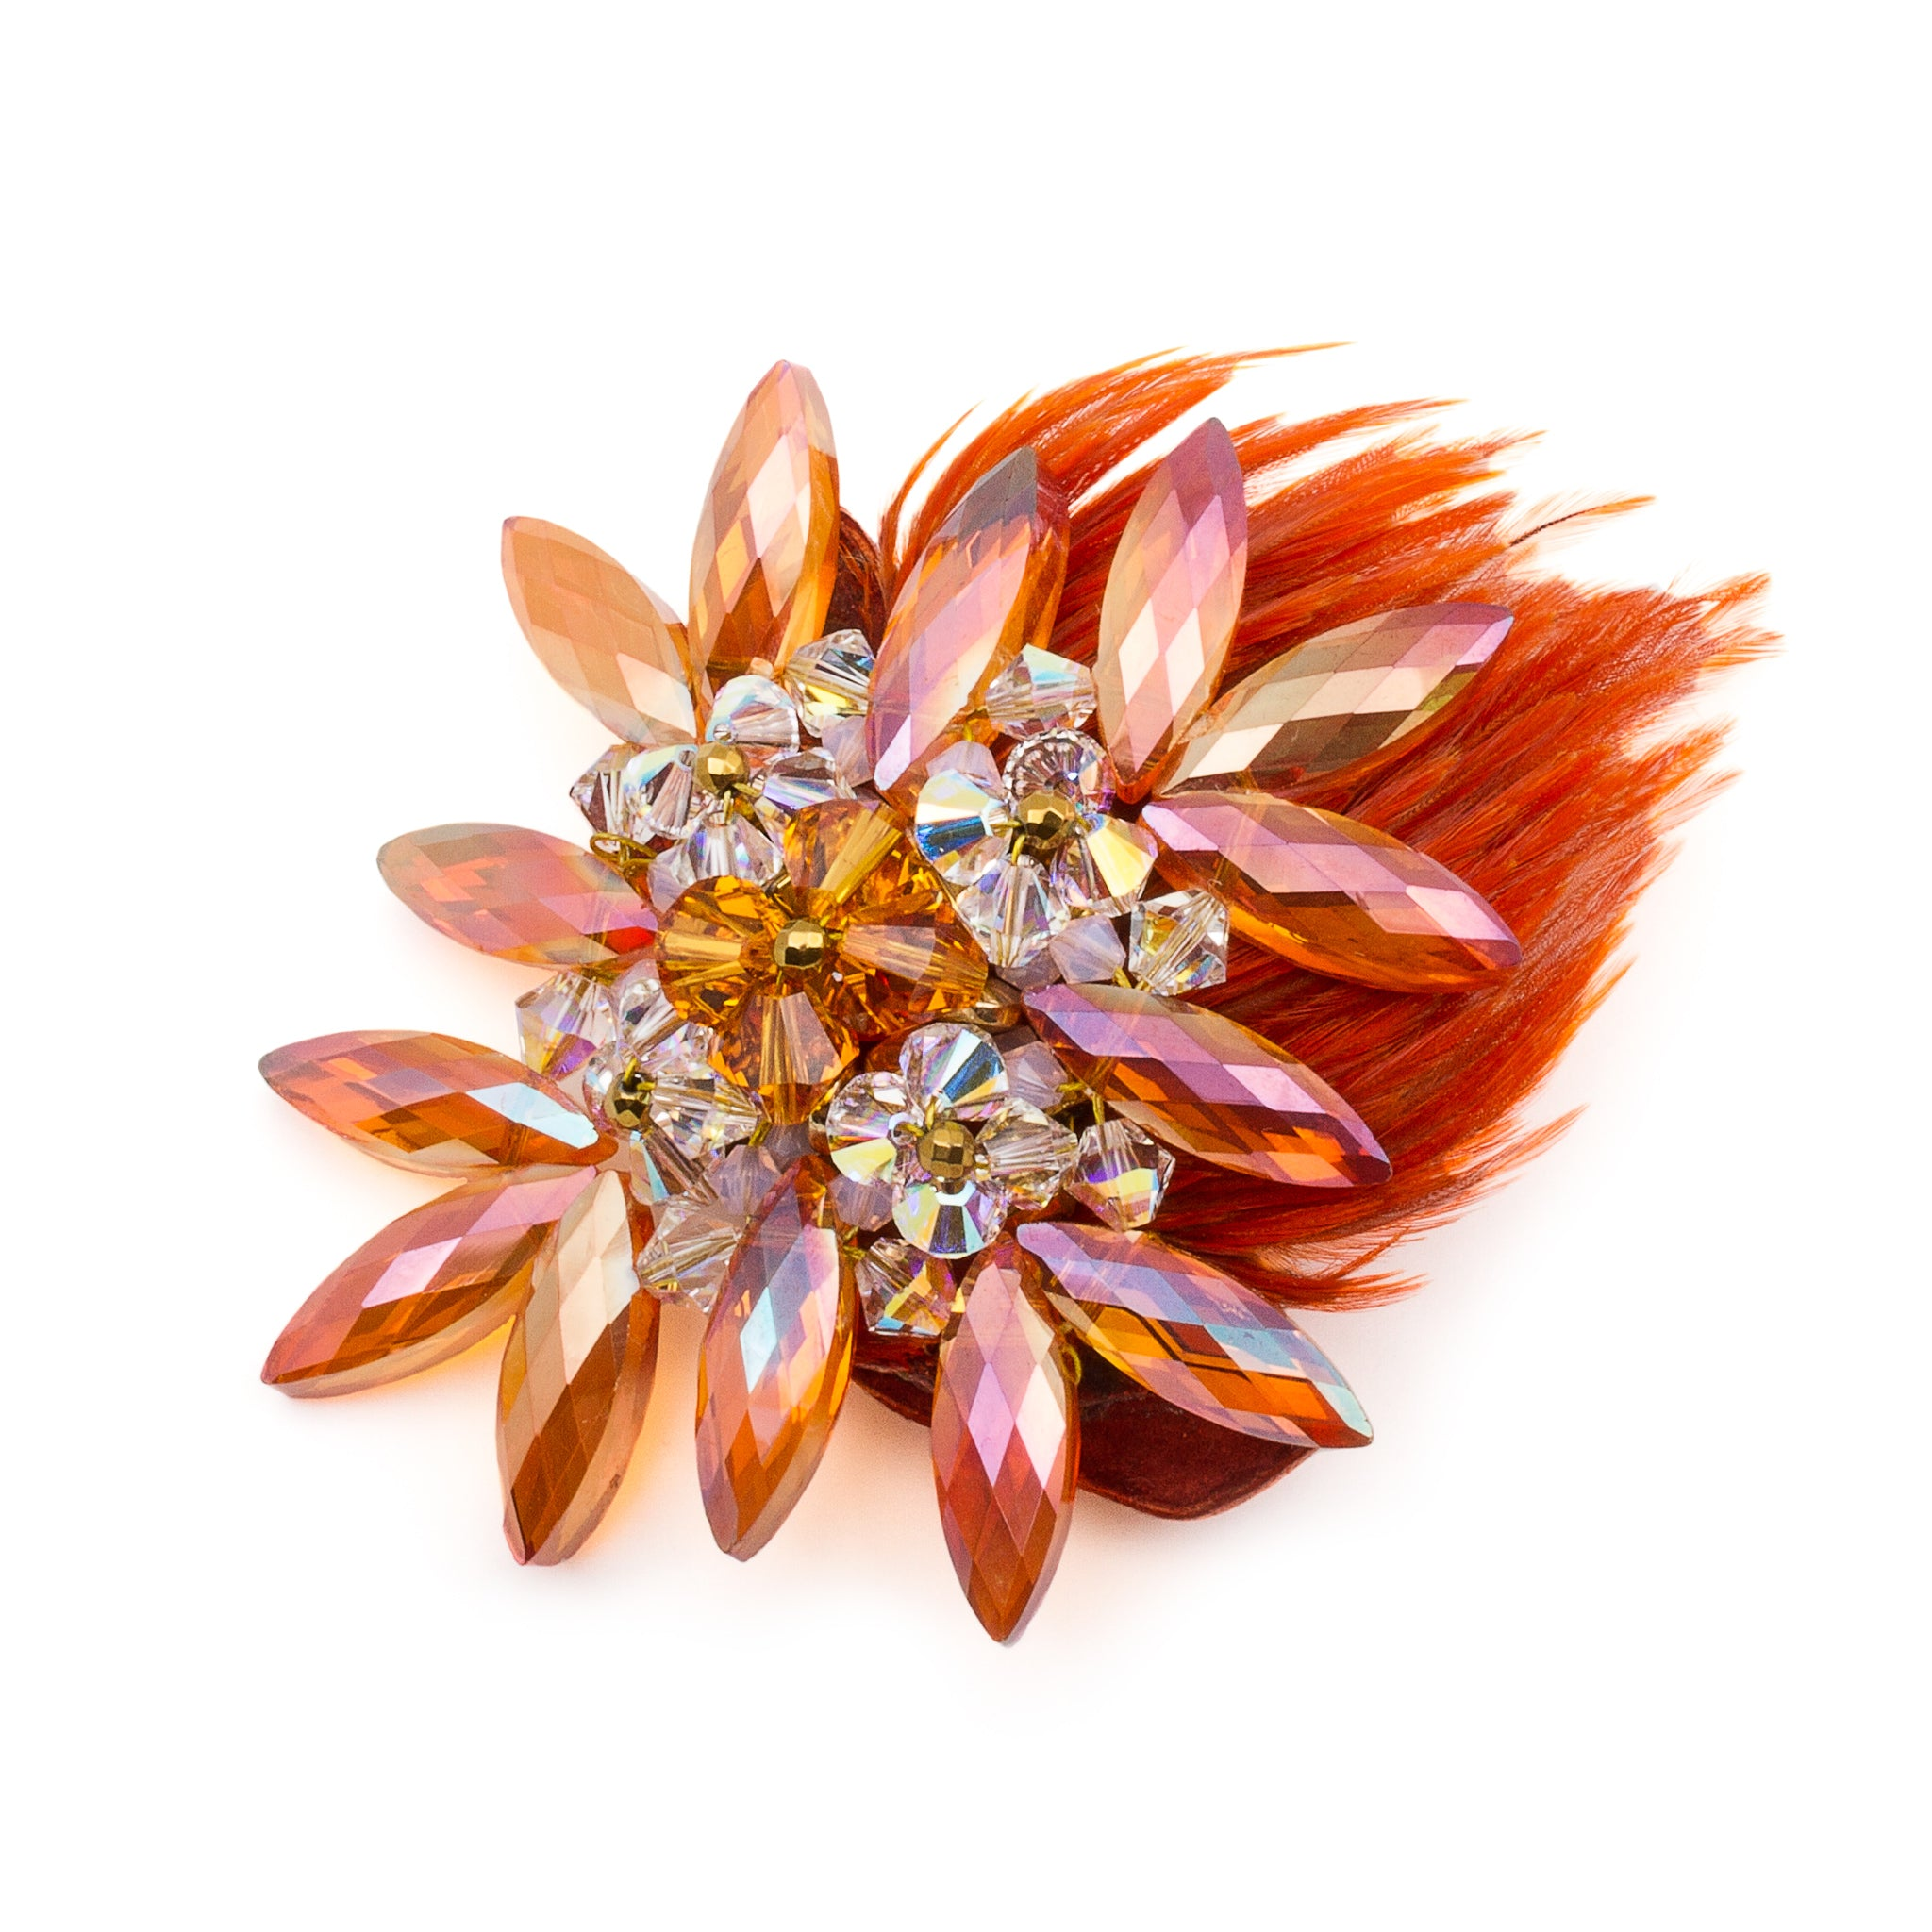 'Firestarter' Brooch